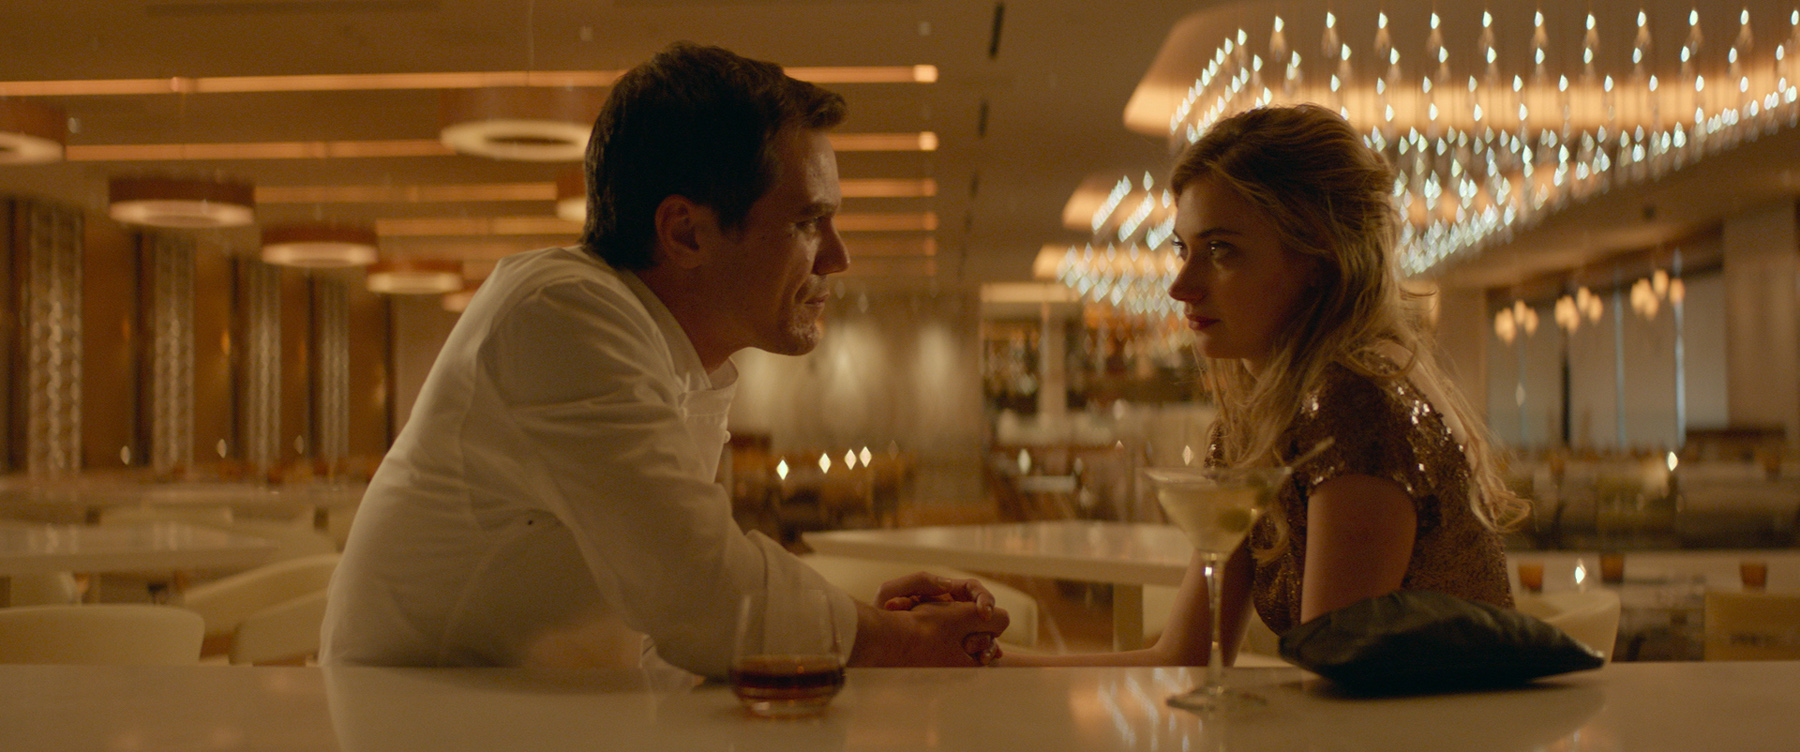 Imogen Poots with Michael Shannon in FRANK & LOLA.  Photo courtesy of the San Francisco Film Society.